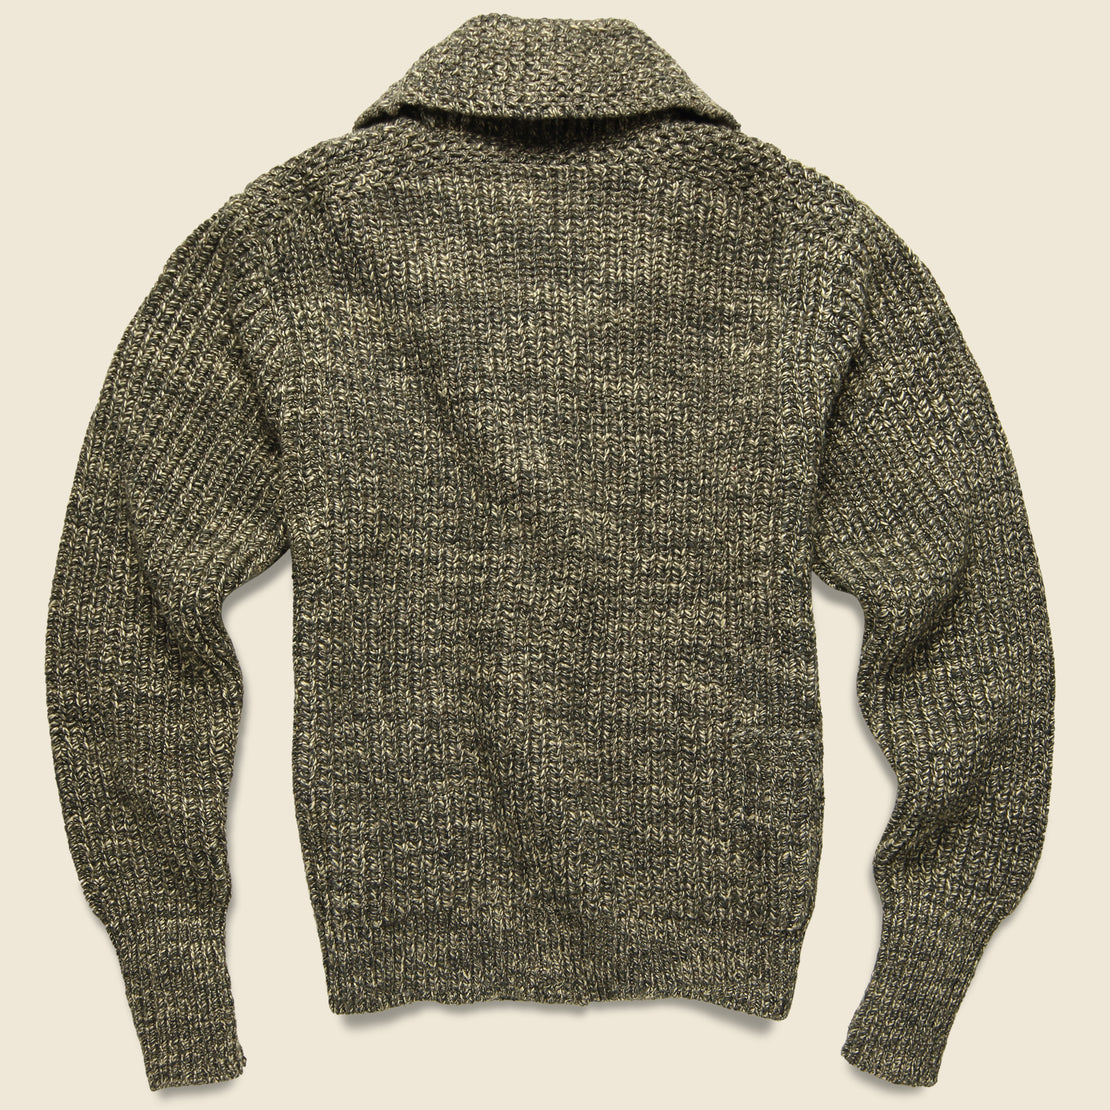 Shawl Collar Cardigan - Olive/Tan